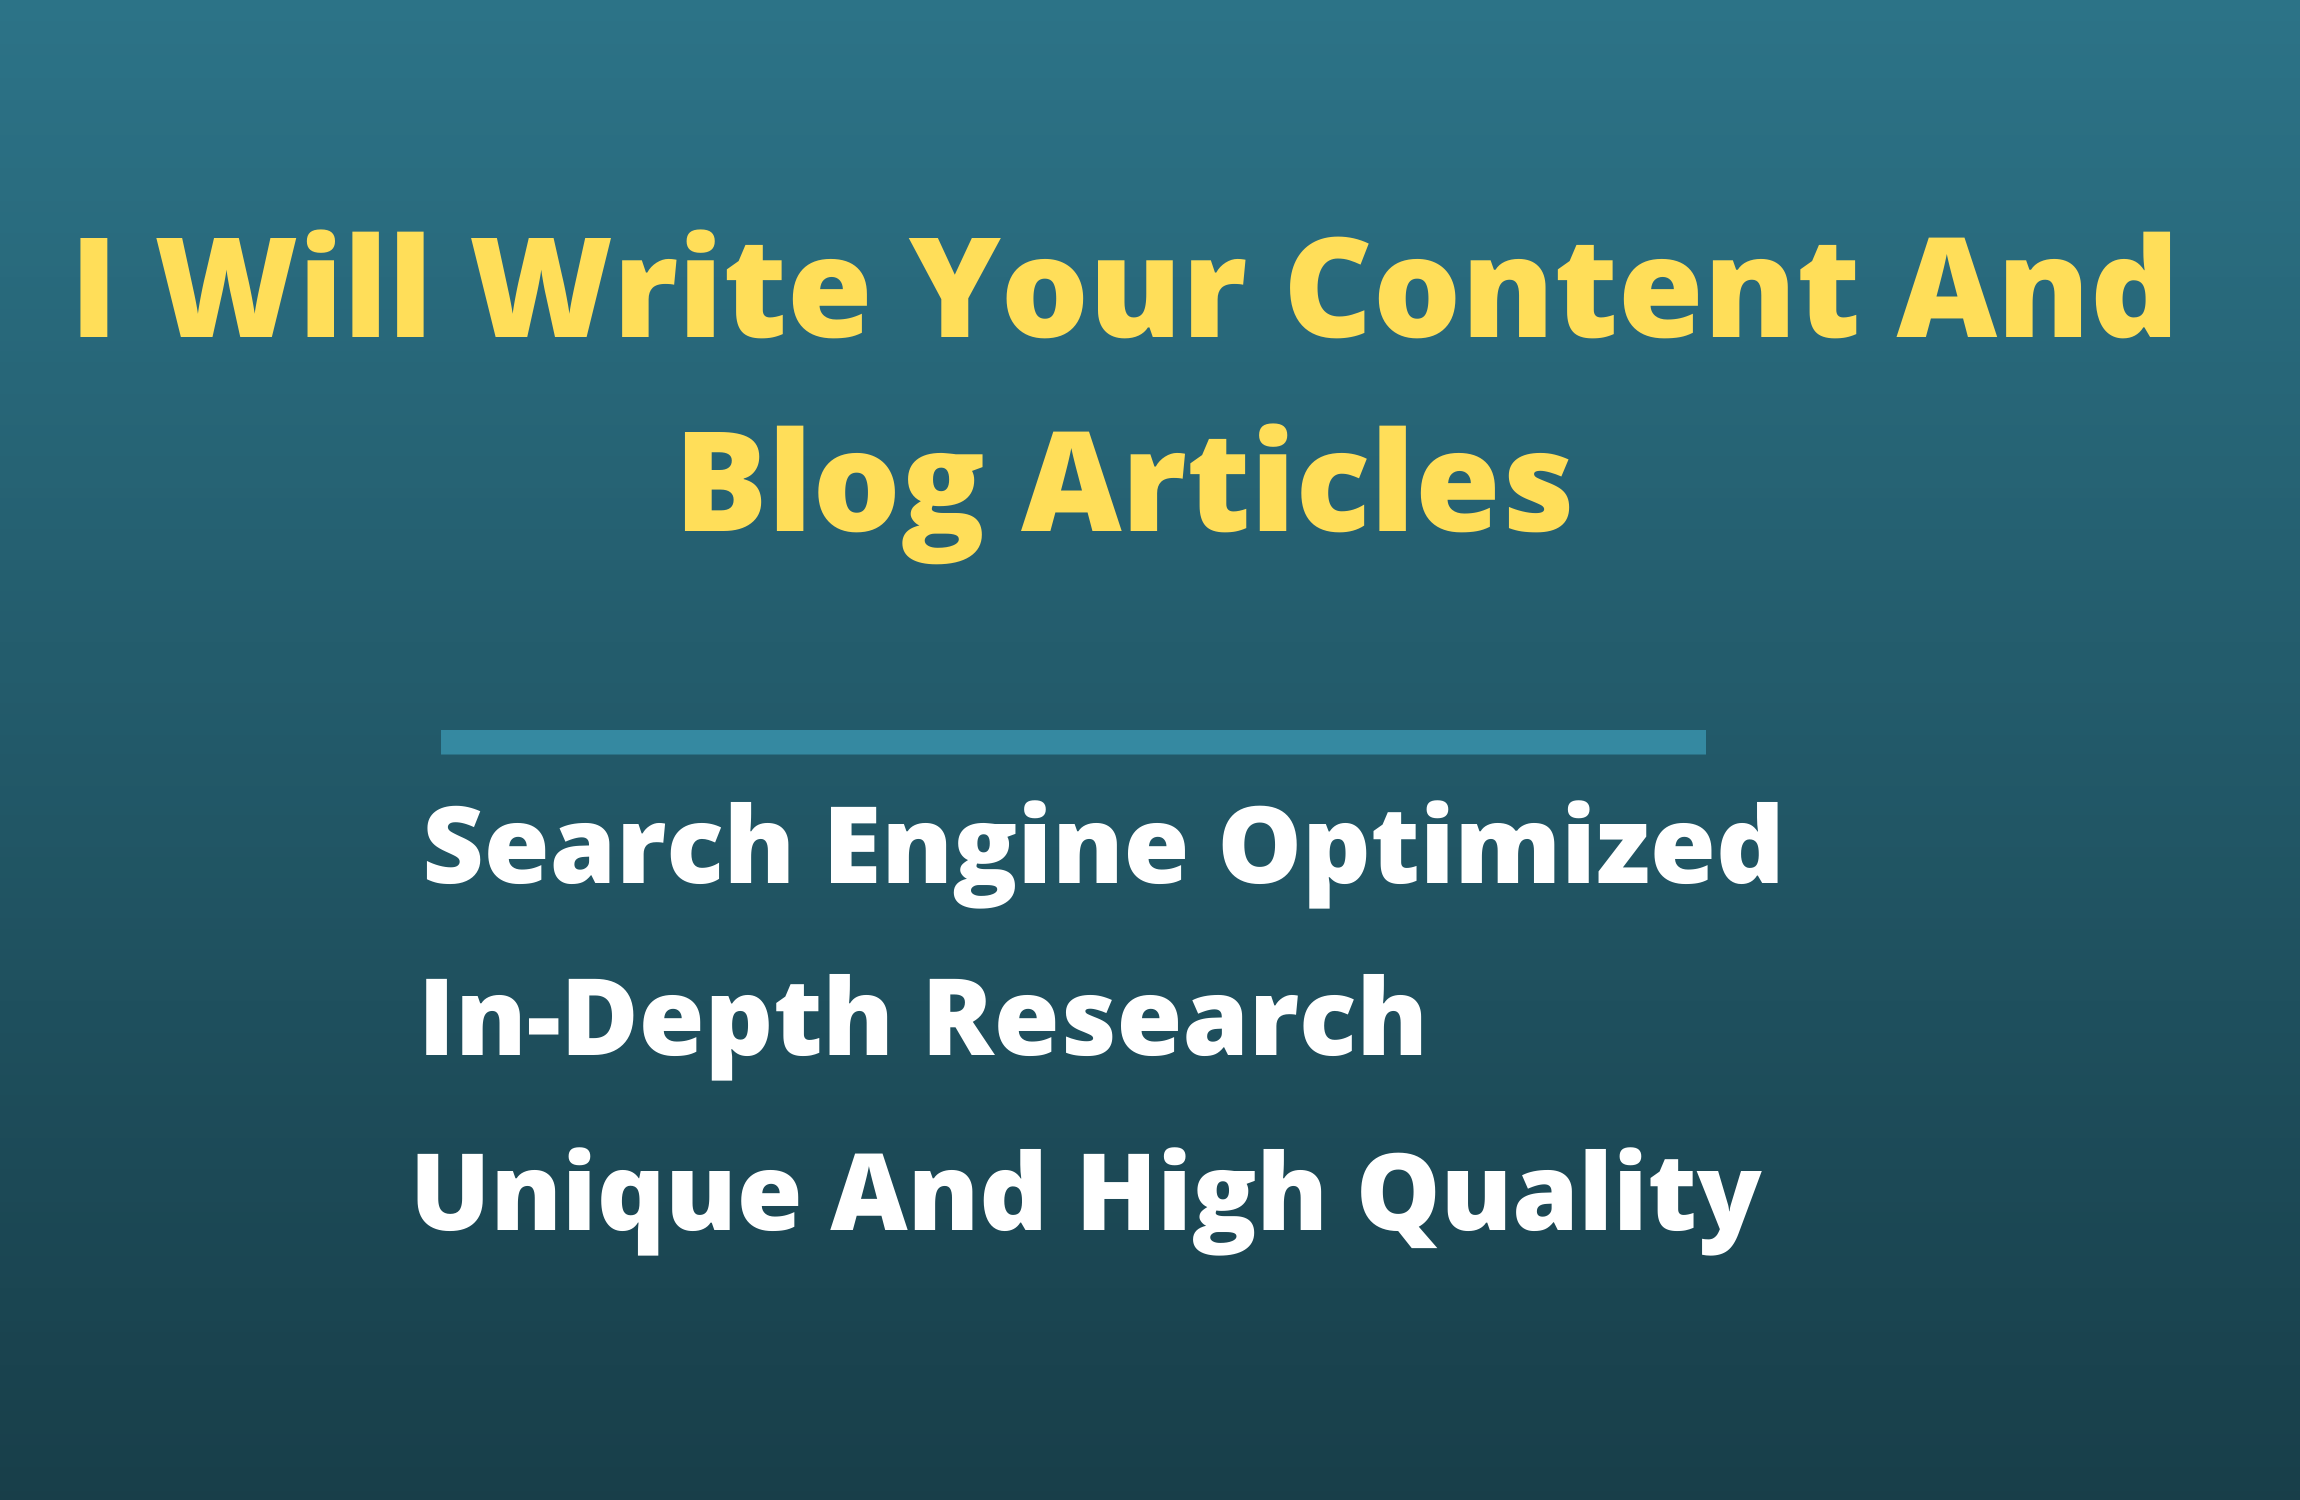 I will be your SEO article or blog content writer